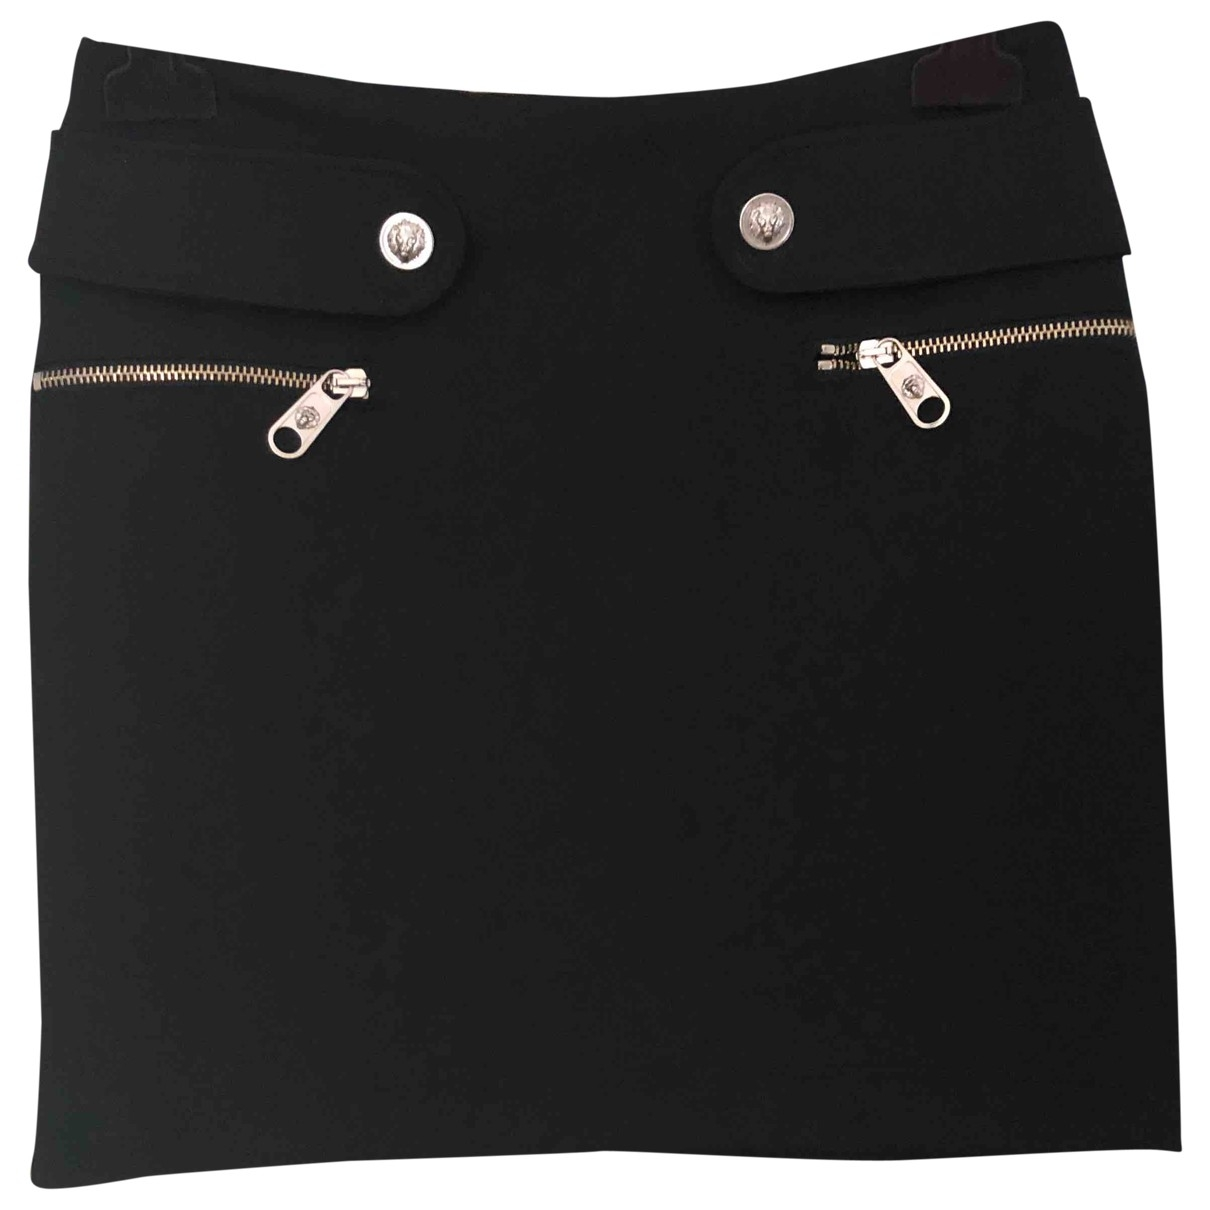 Versus \N Black skirt for Women 38 IT